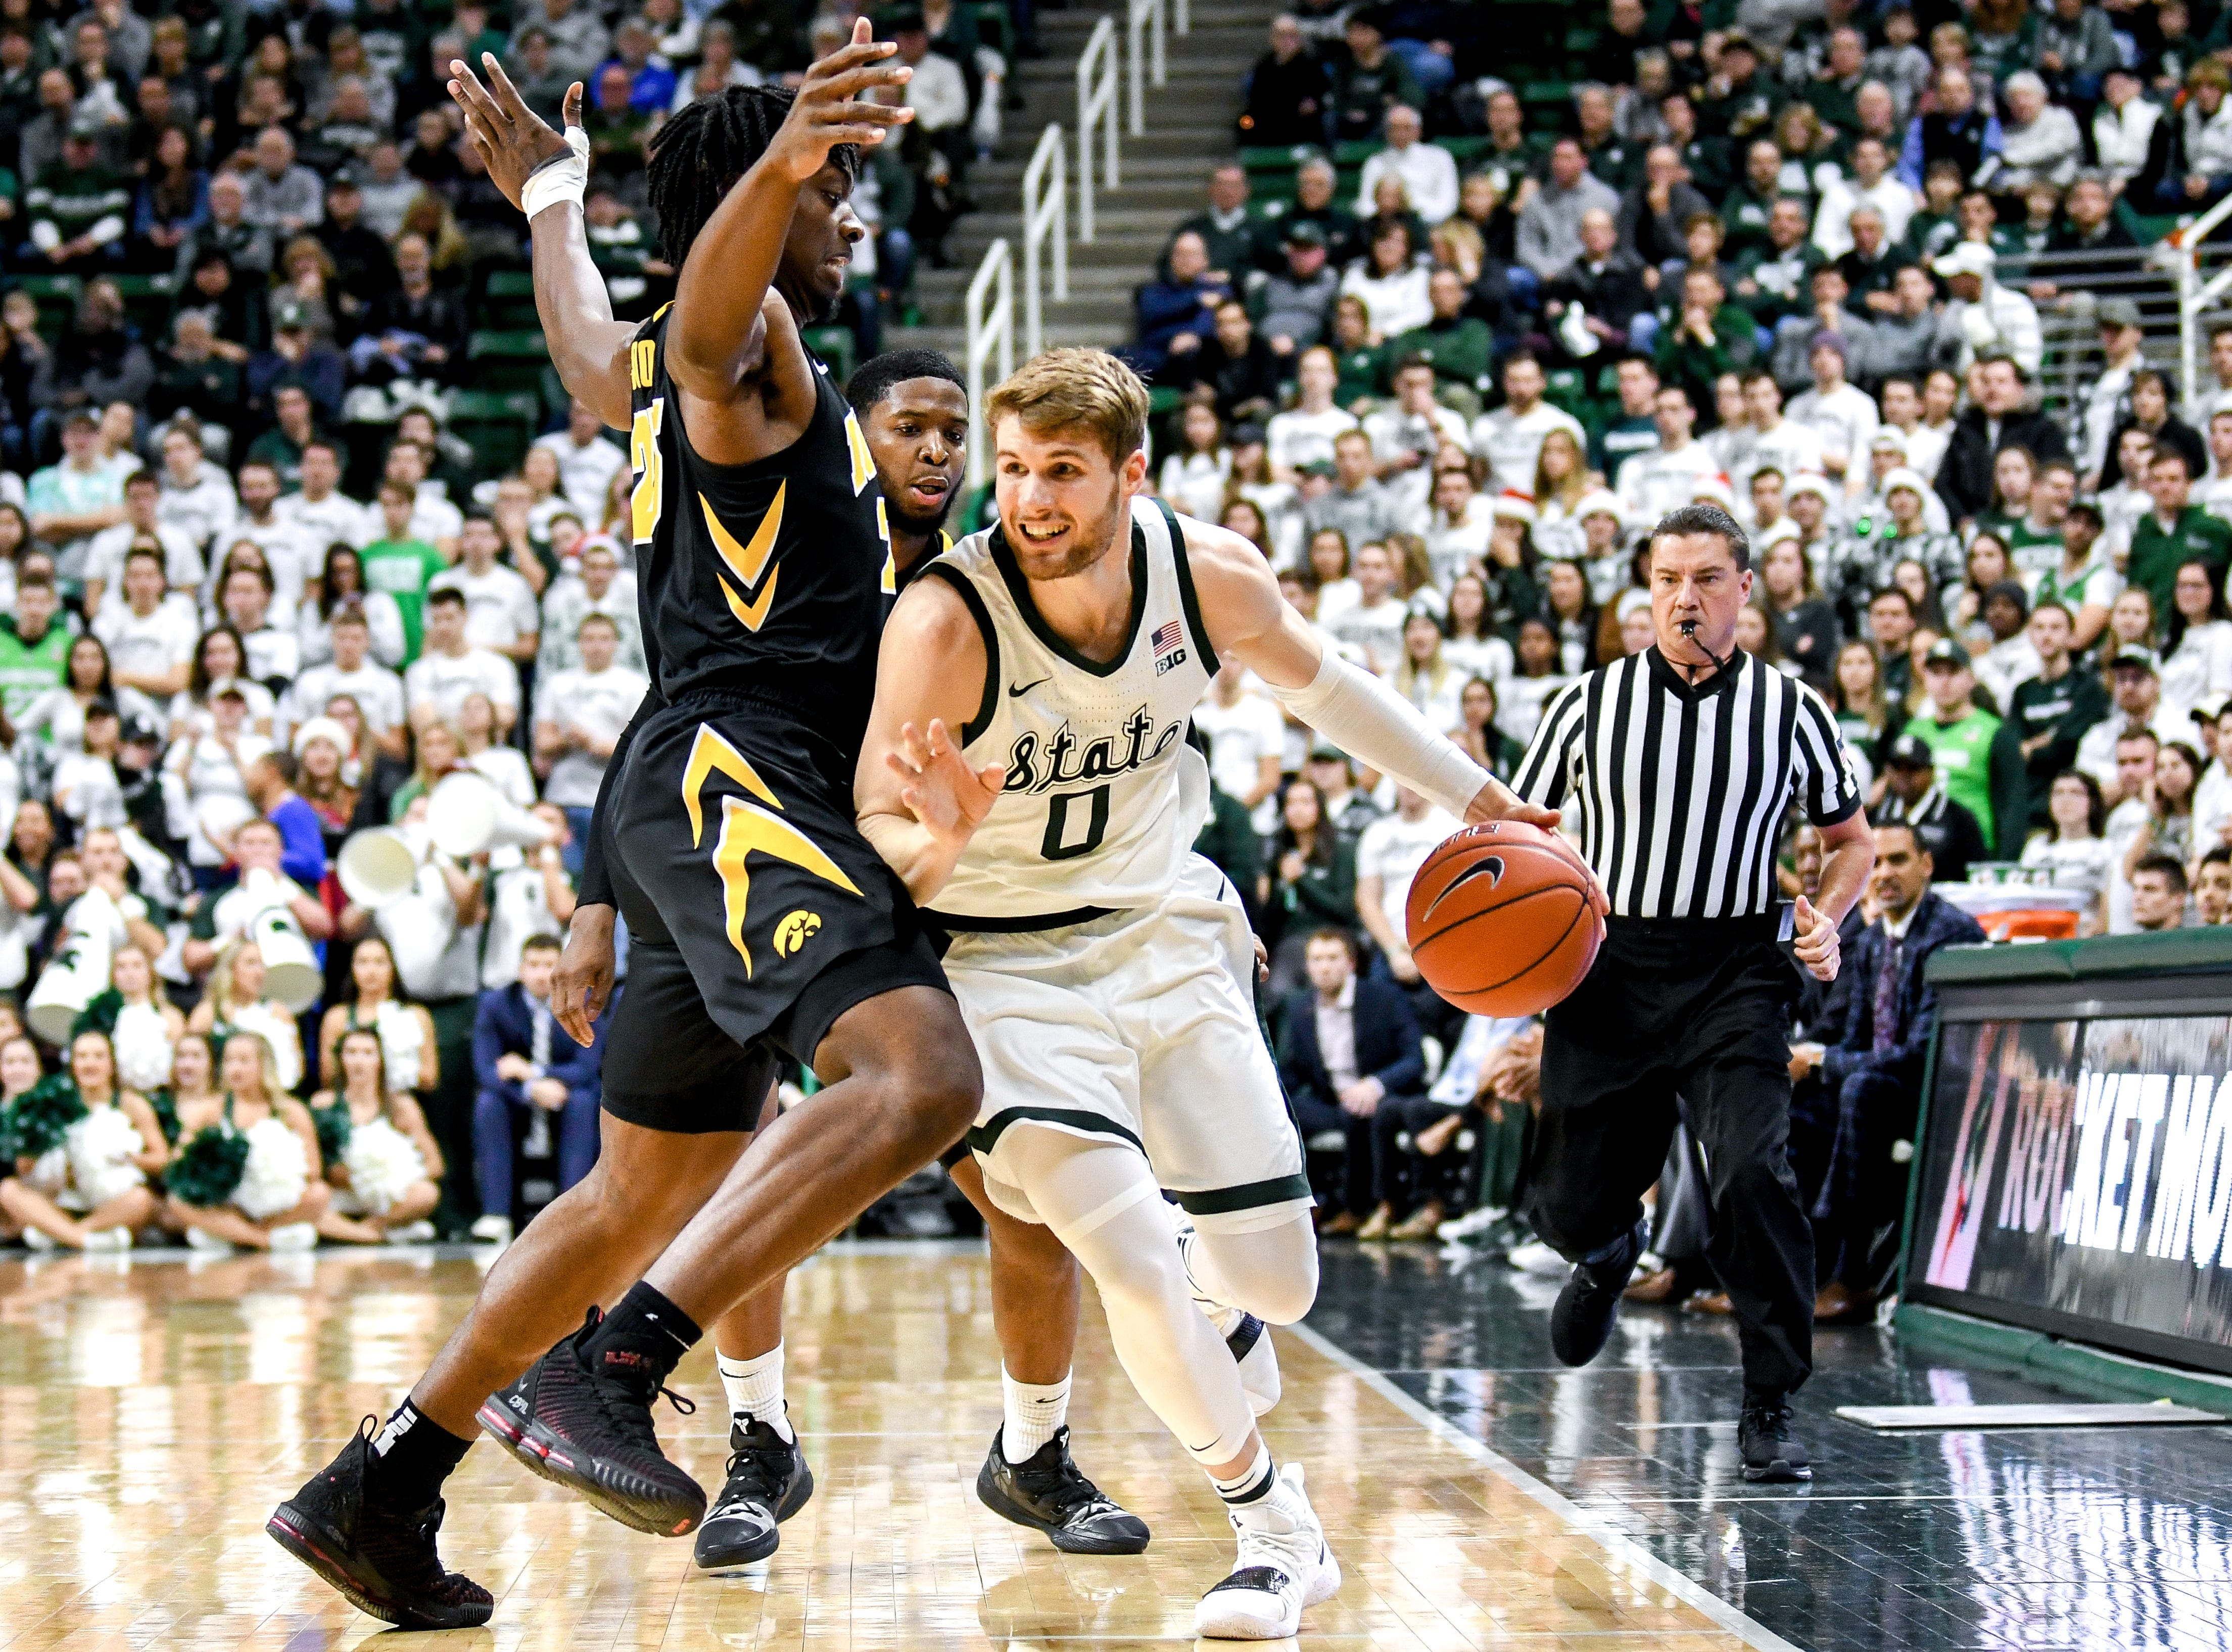 Michigan State's Kyle Ahrens, right, pushes pas Iowa's Tyler Cook during the first half on Monday, Dec. 3, 2018, at the Breslin Center in East Lansing.